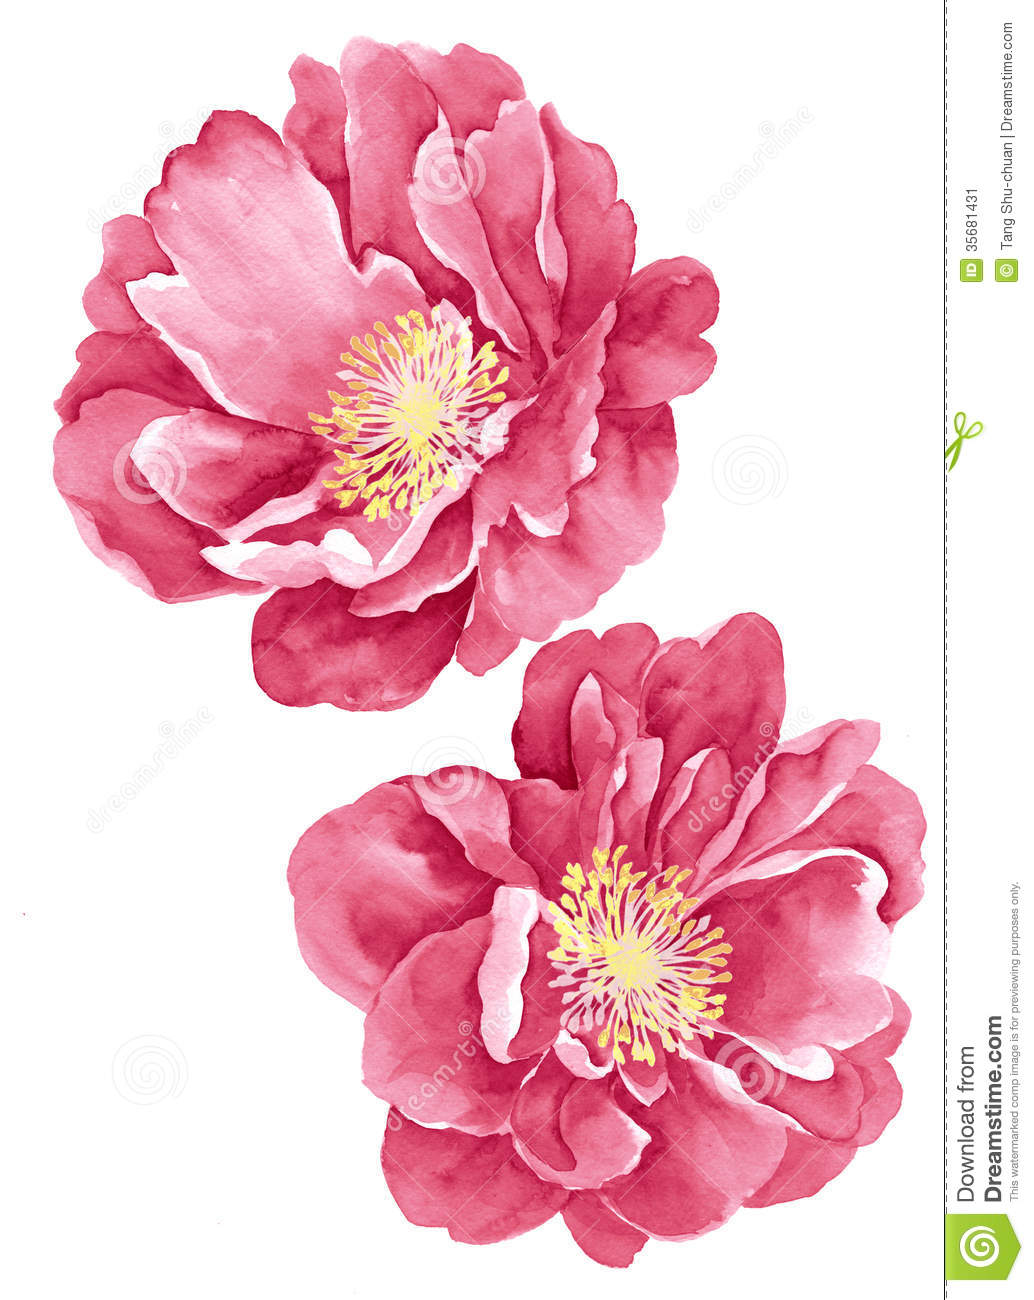 Simple Watercolor Flower Illustration Stock Image